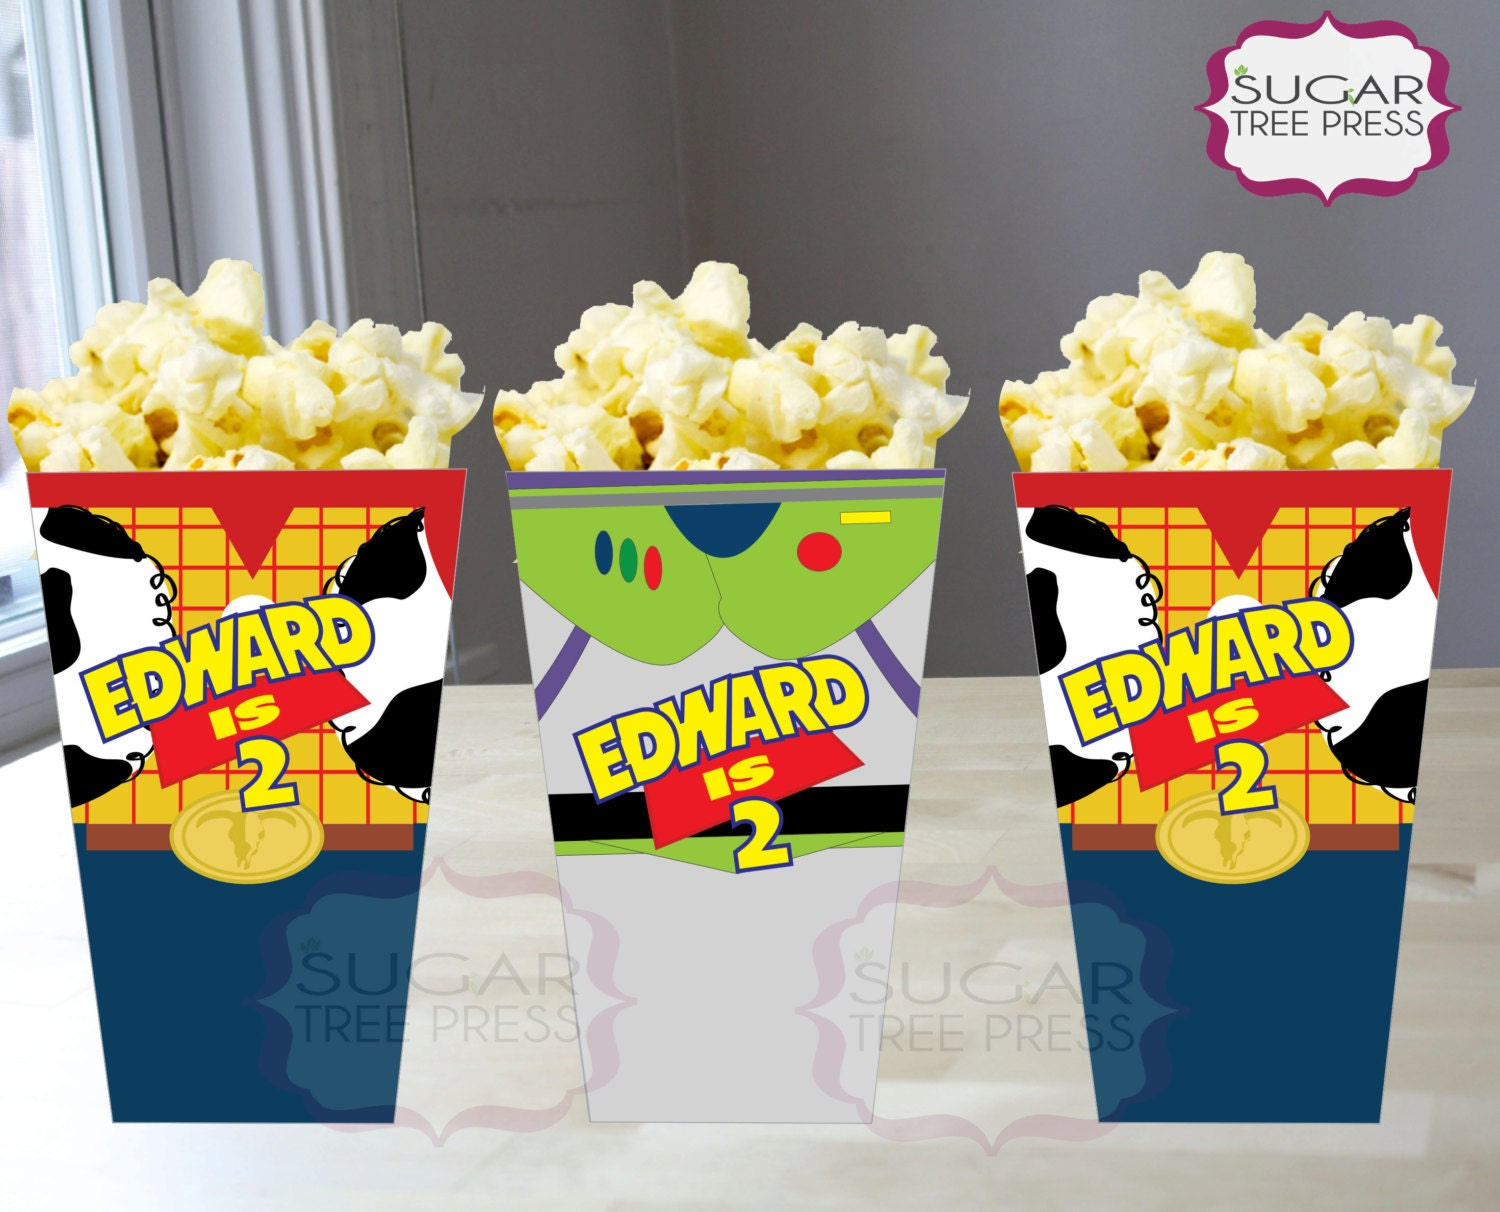 Toy story party ideas birthday in a box - Printable Toy Story Inspired Popcorn Or Snack Box Birthday Party Favor